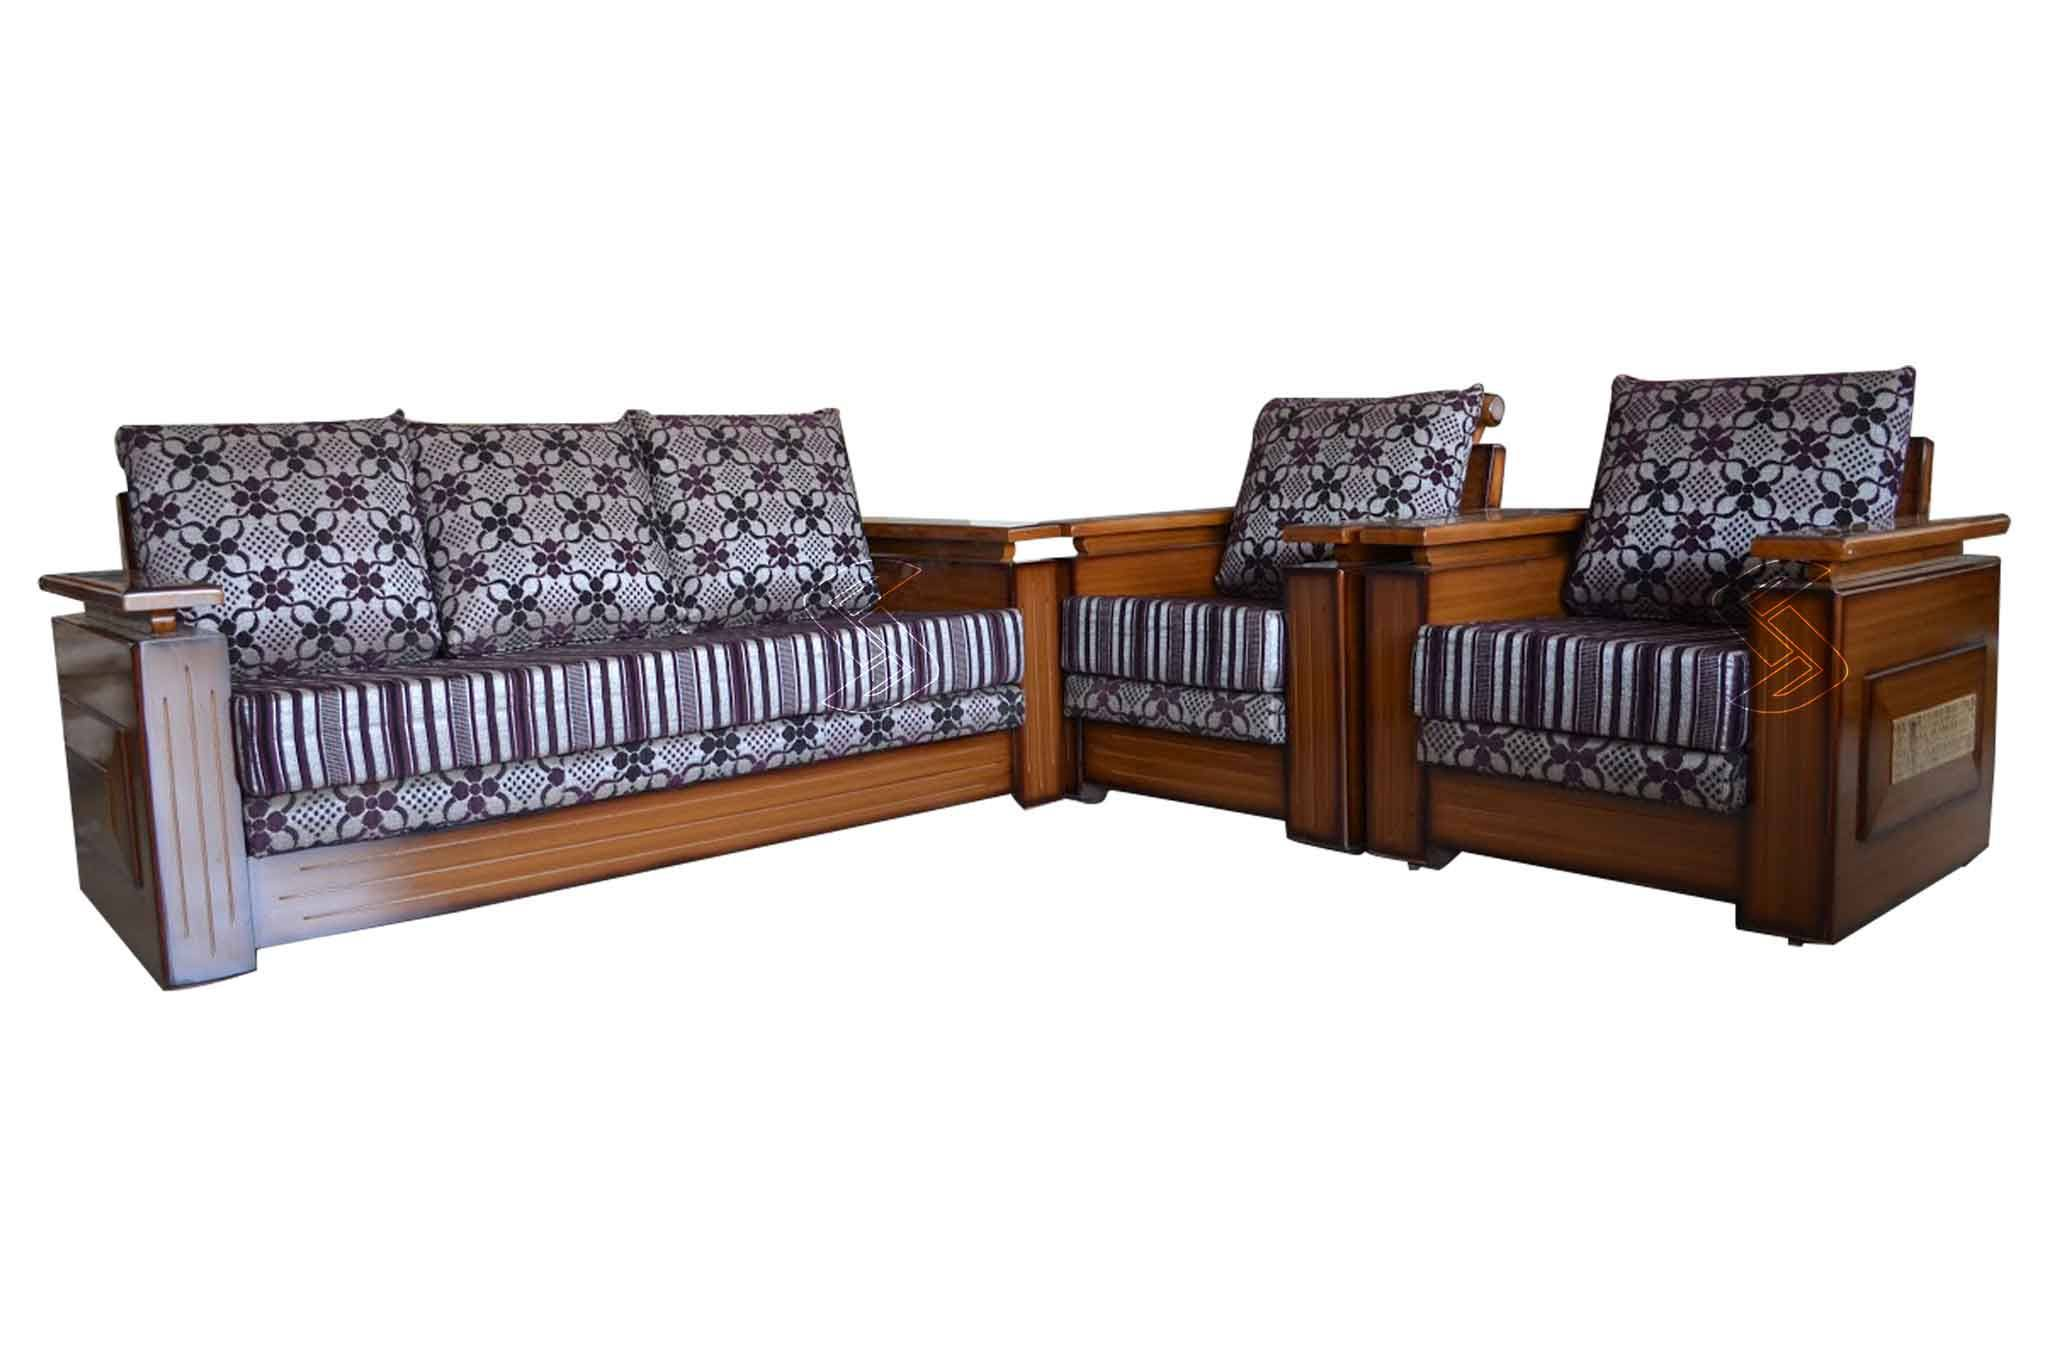 Sofa Set Online Malmo Teakwood 3 1 1 Sofa Set Natural Finish